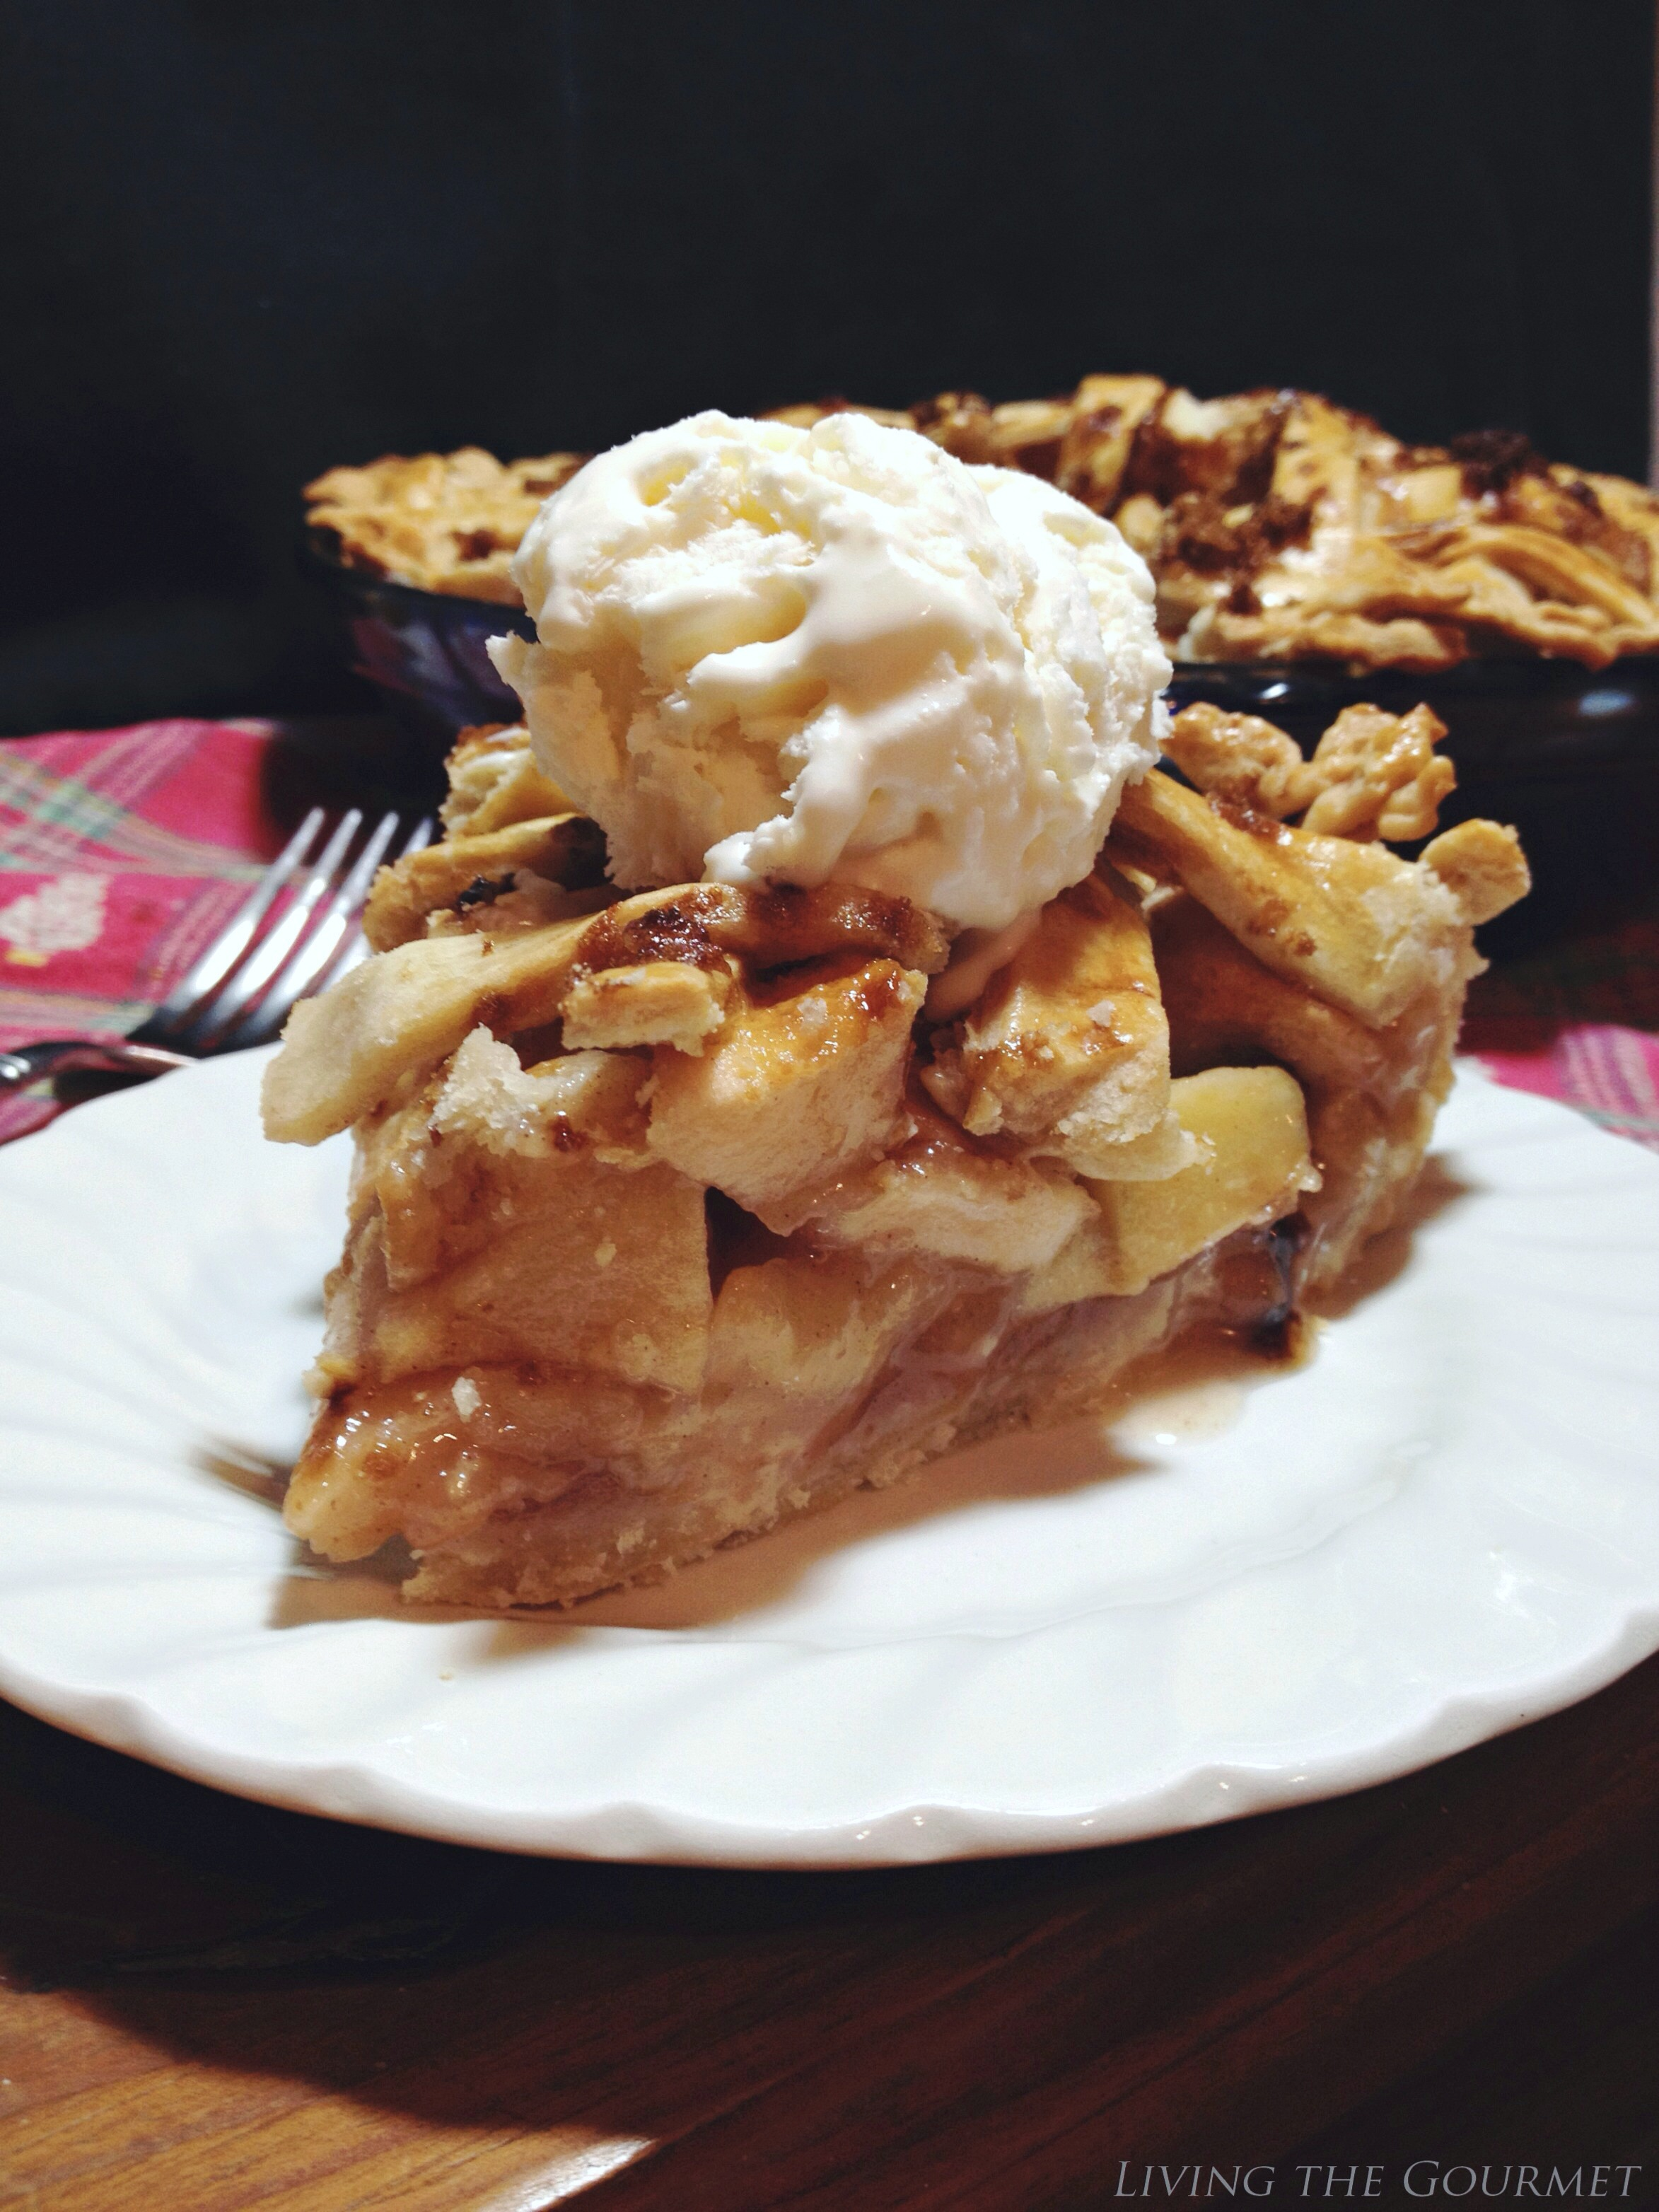 Living the Gourmet: Apple Brandy Pie